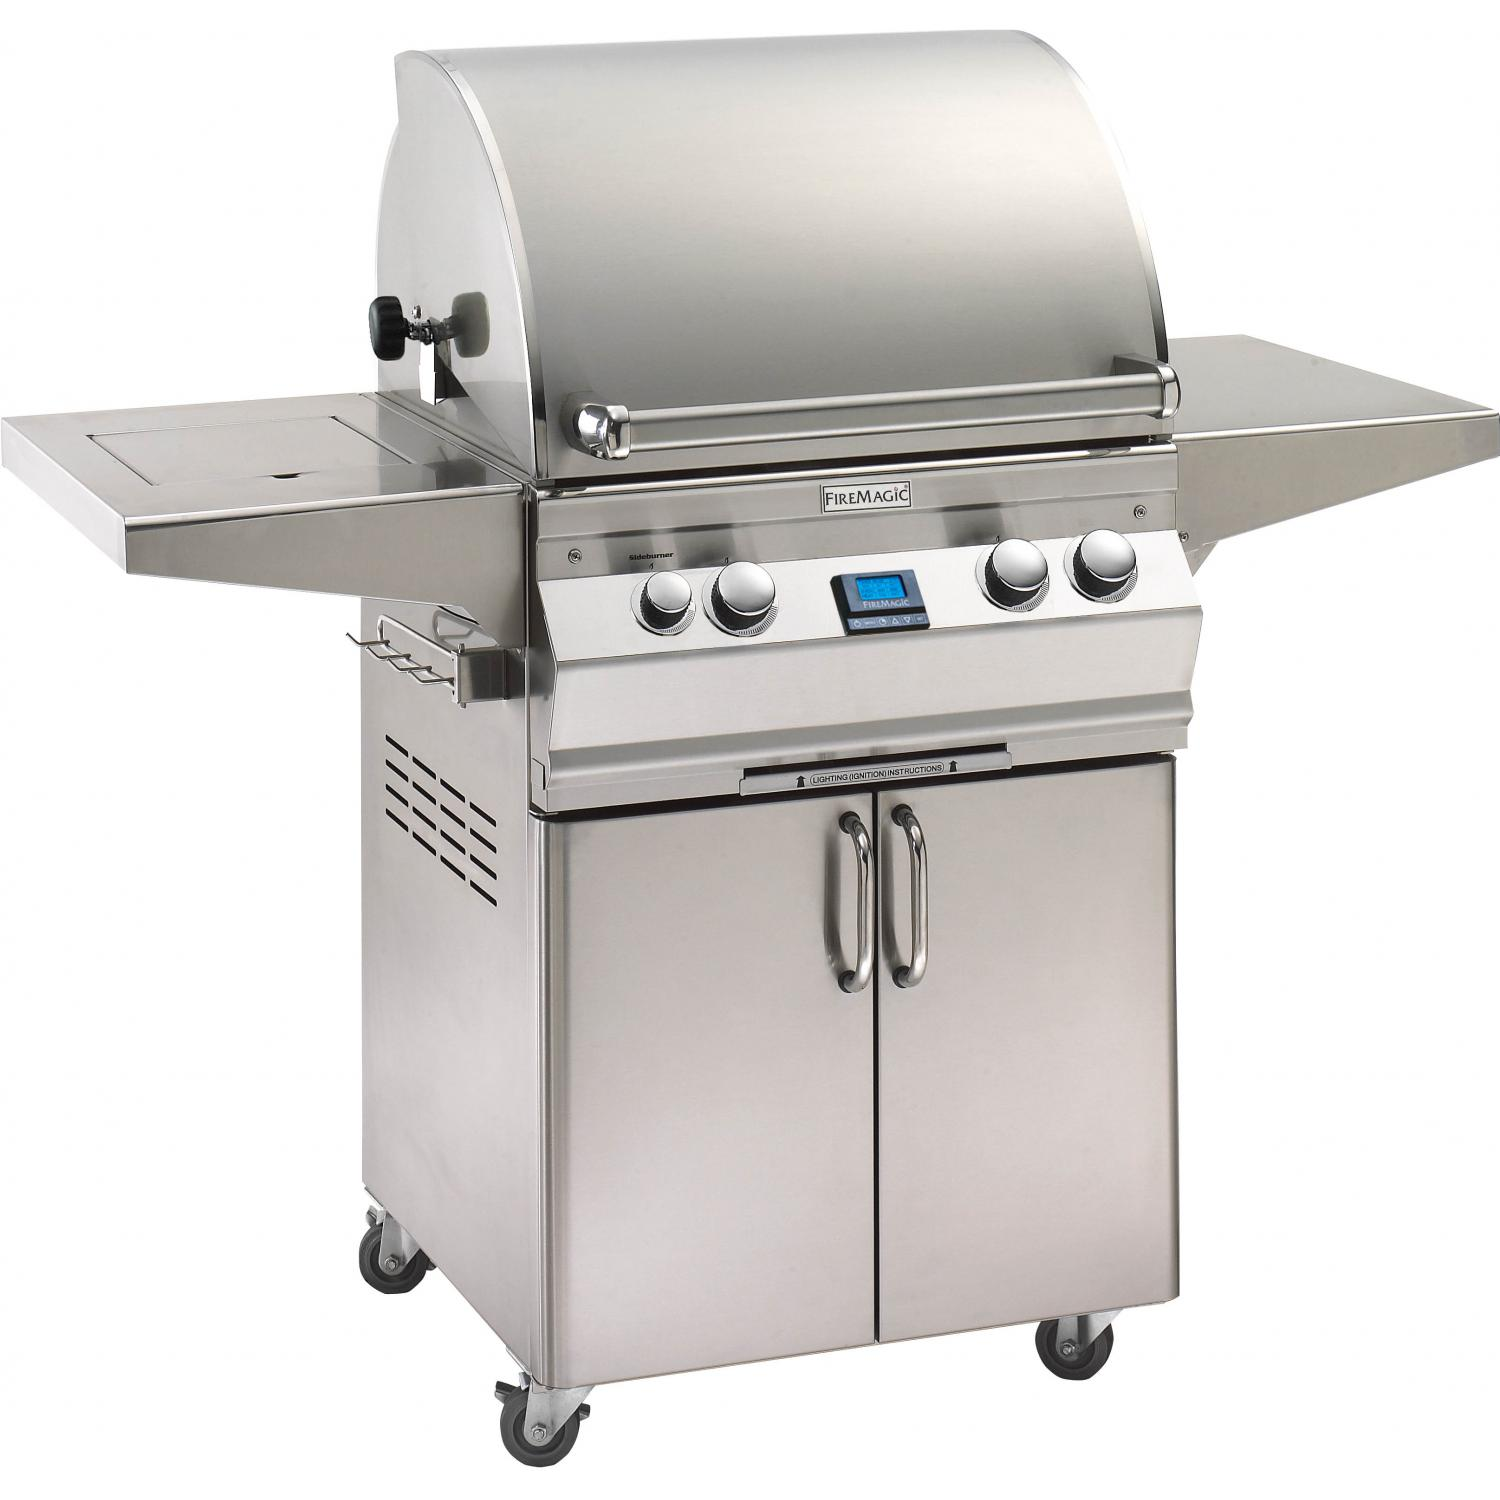 Fire Magic Aurora A530s All Infrared Natural Gas Grill With Single Side Burner And Rotisserie On Cart - A530s-6A1N-62 2893942